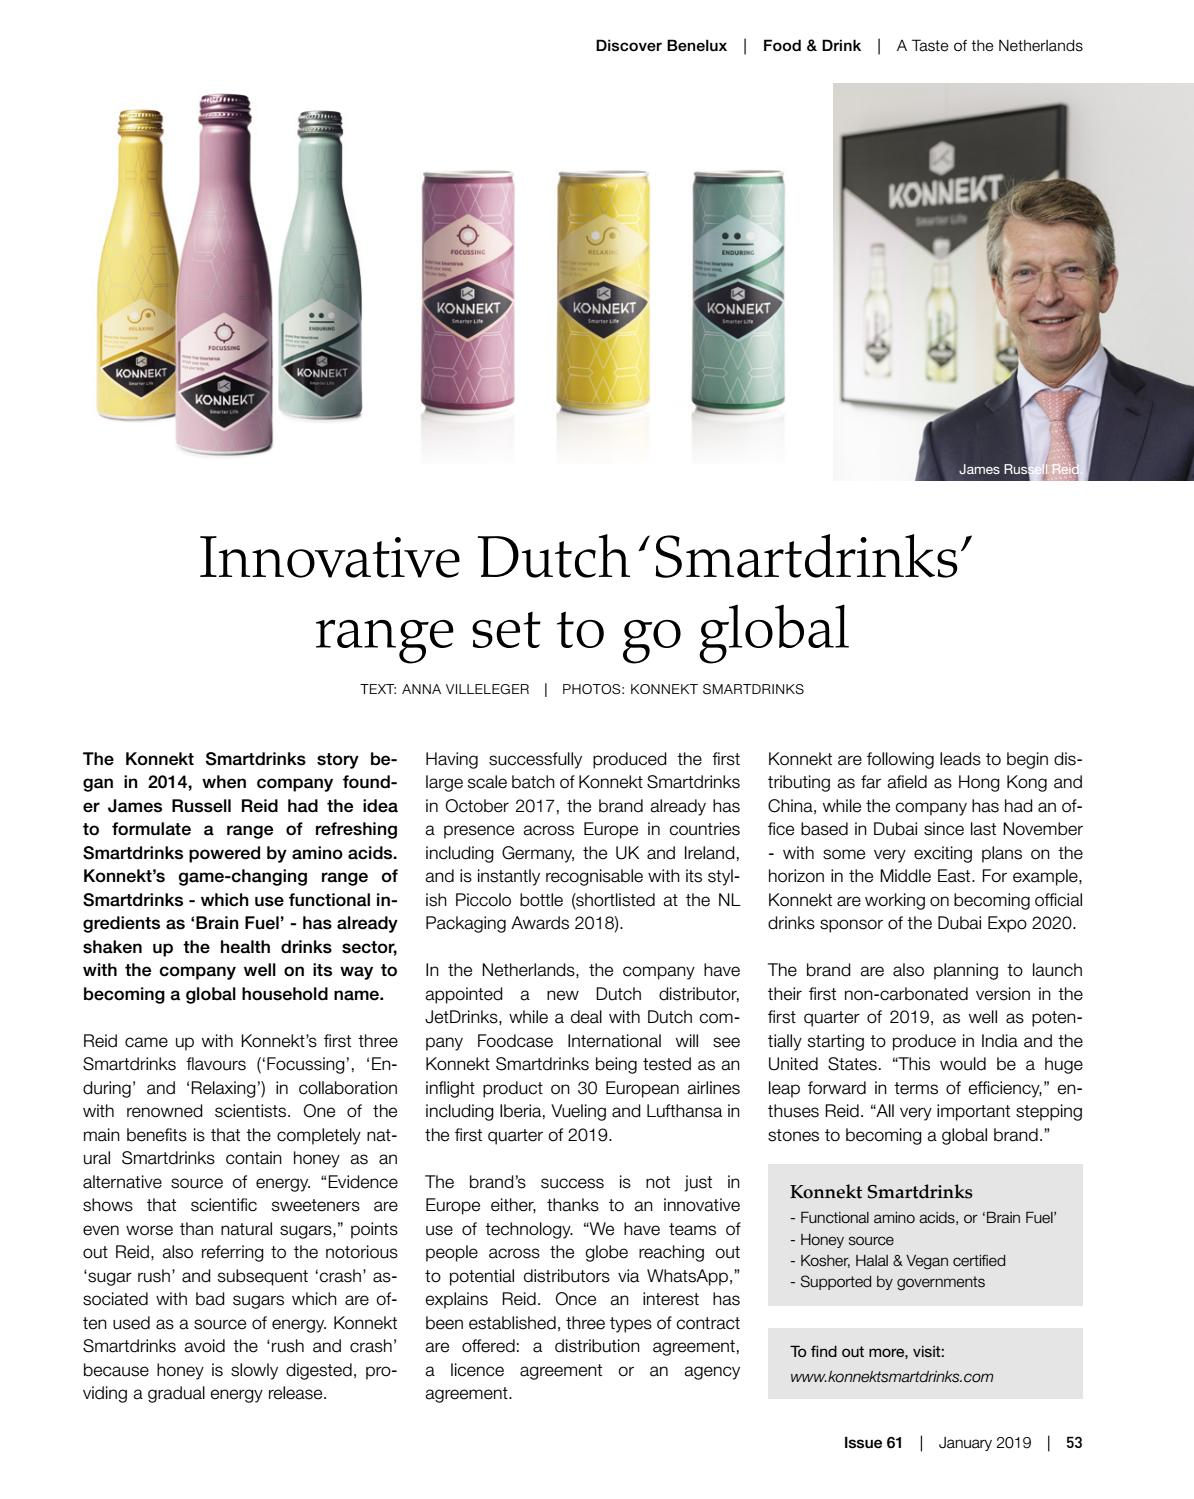 Discover Benelux, Issue 61, January 2019 by Scan Group - issuu